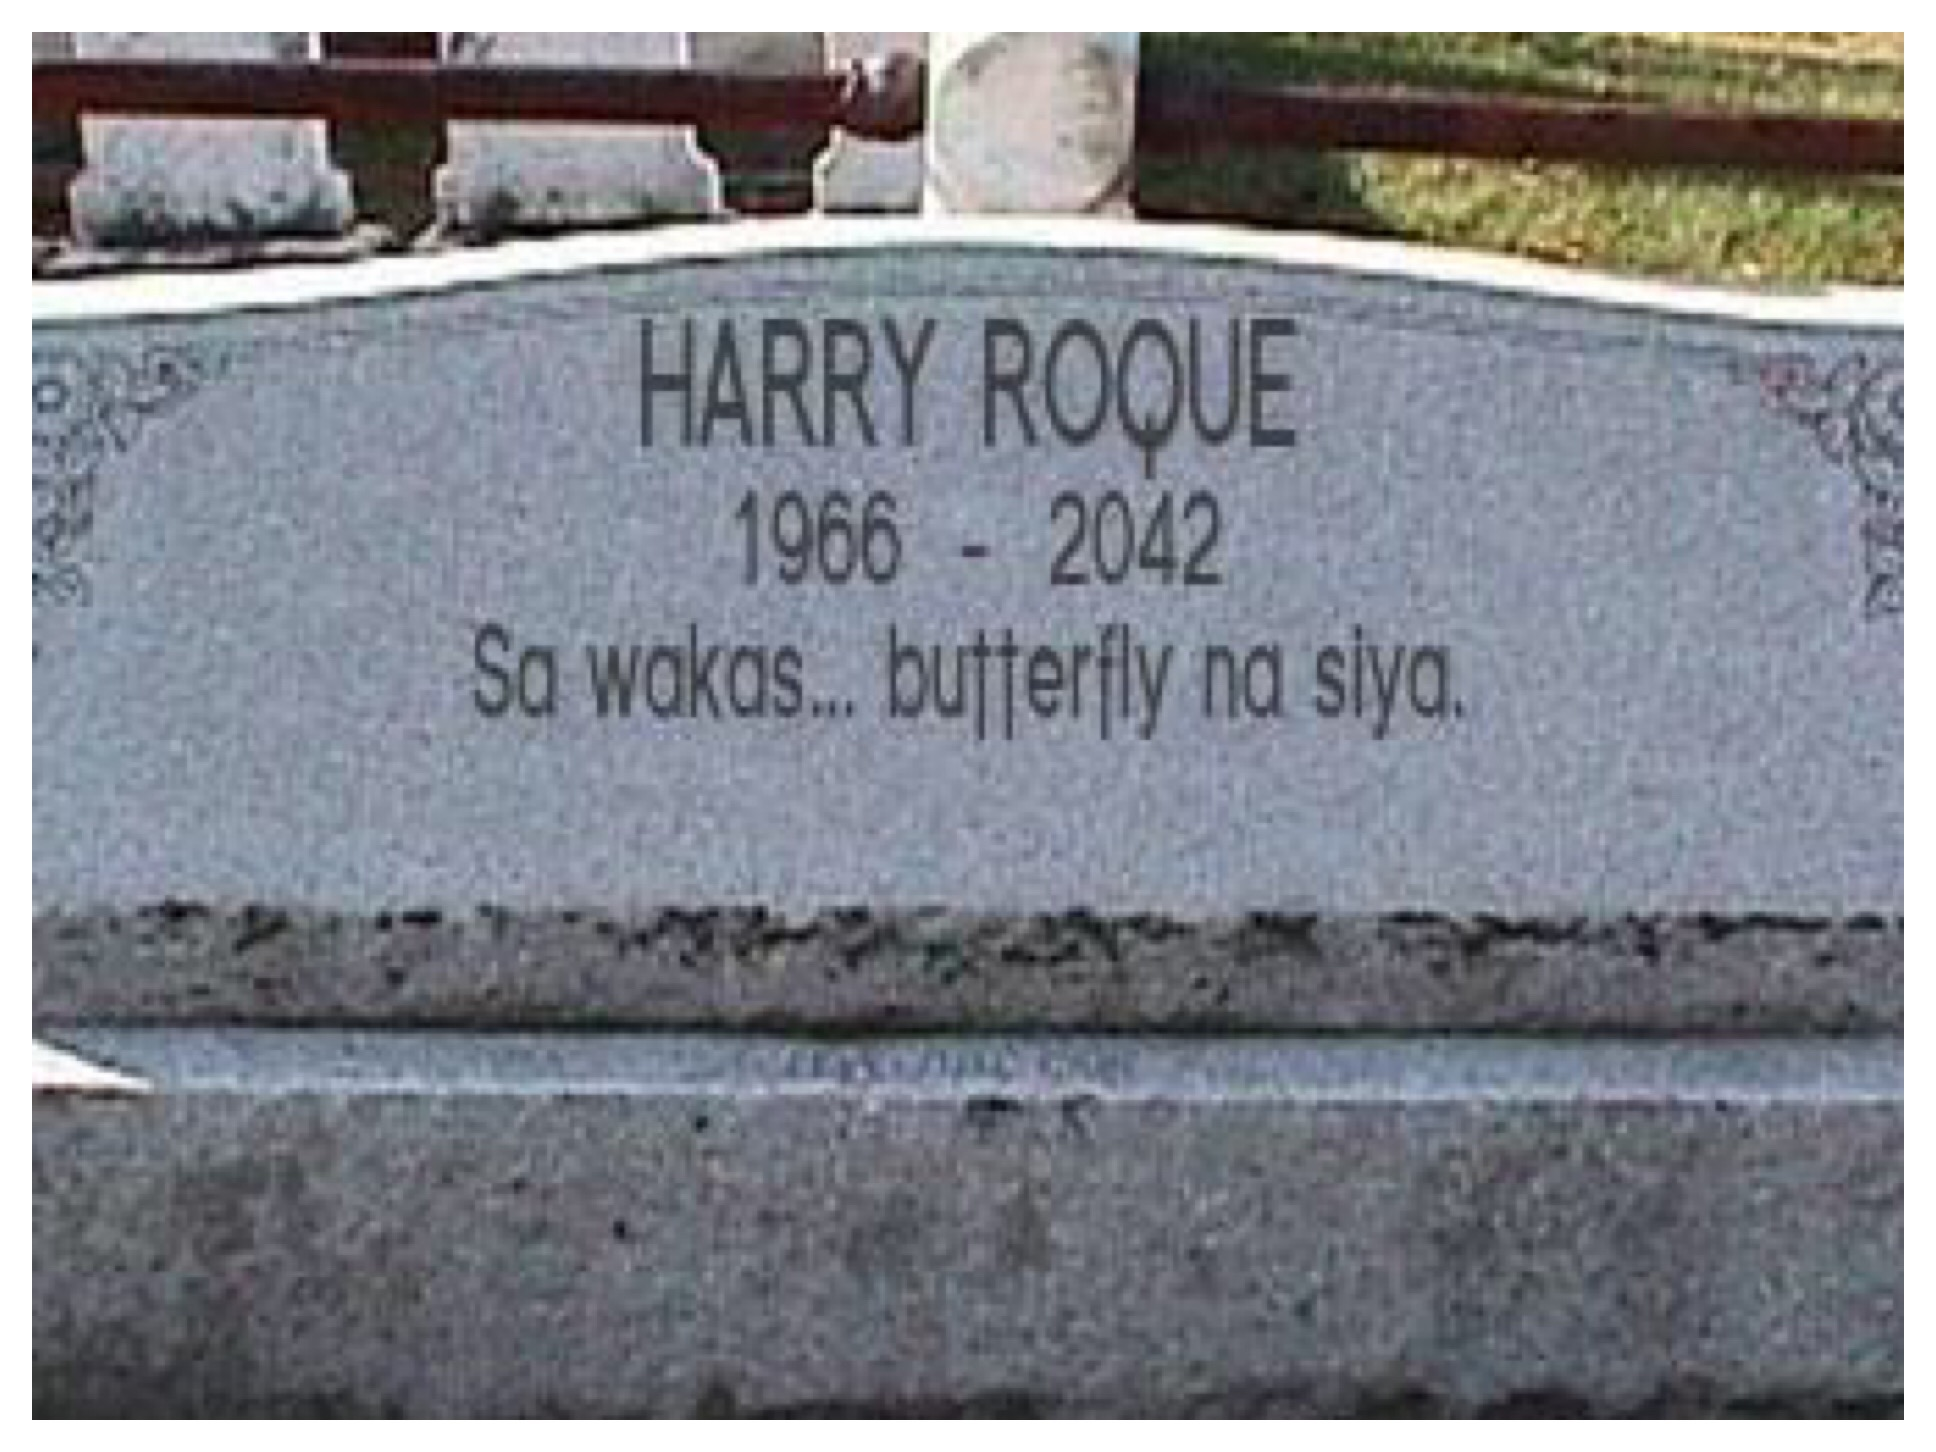 15 hARRY rOQUE